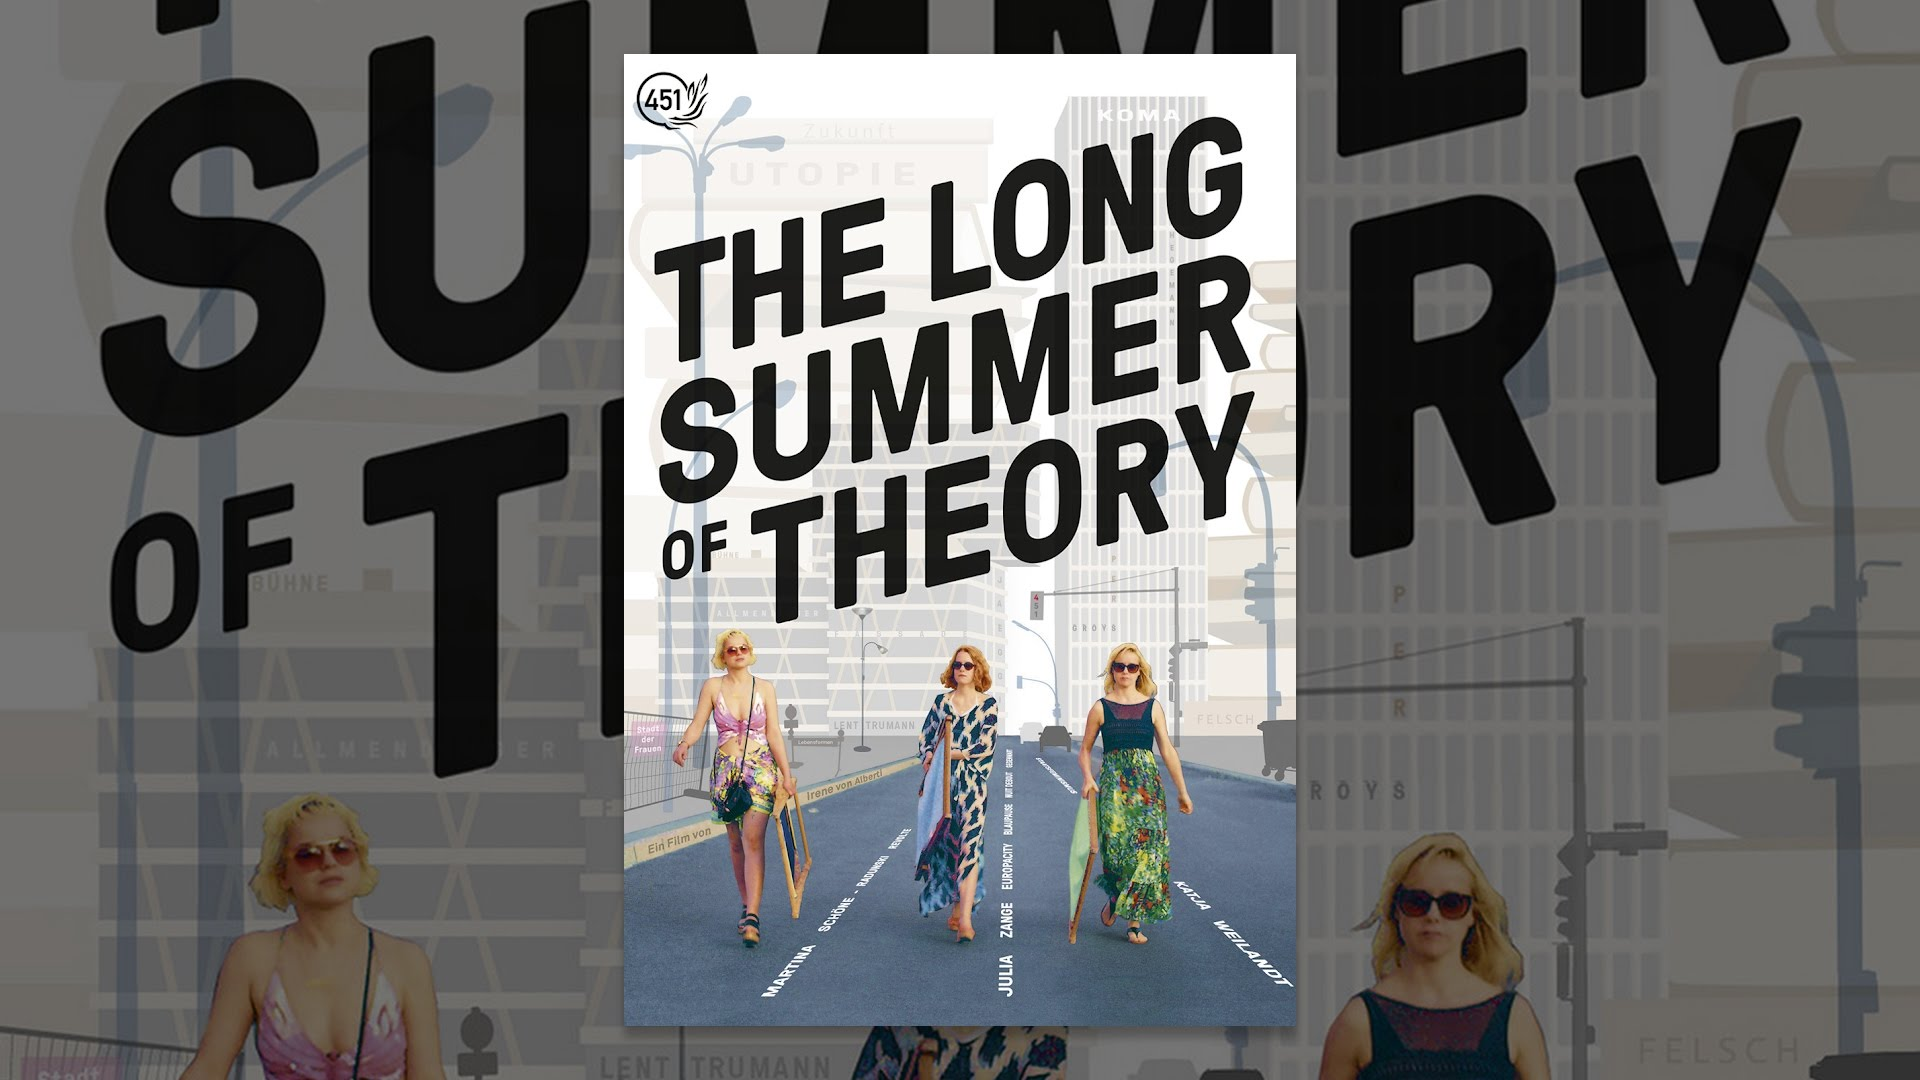 The long summer of theory 2